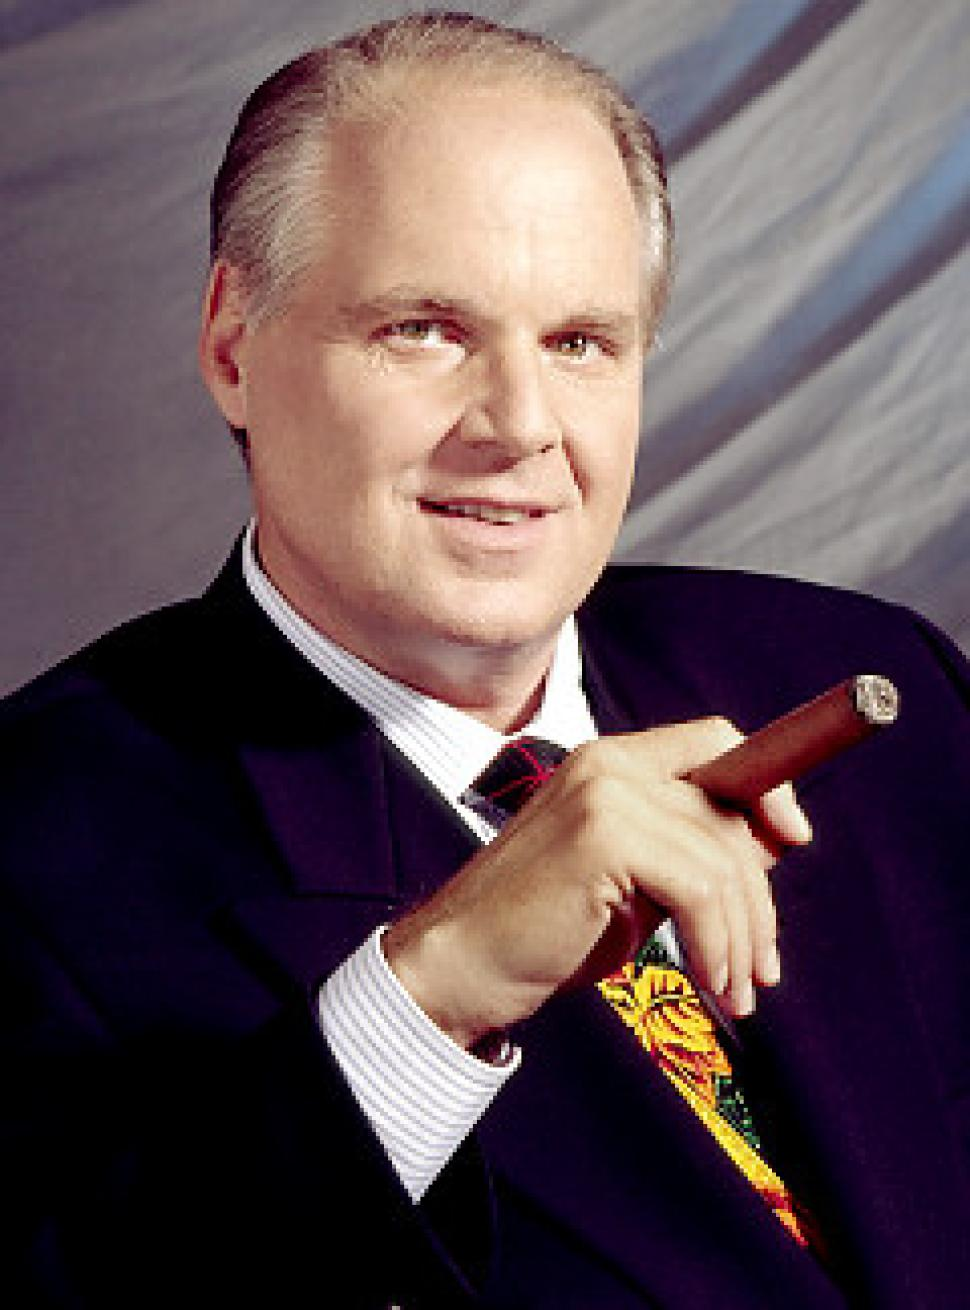 talk show host Rush Limbaugh - age: 70